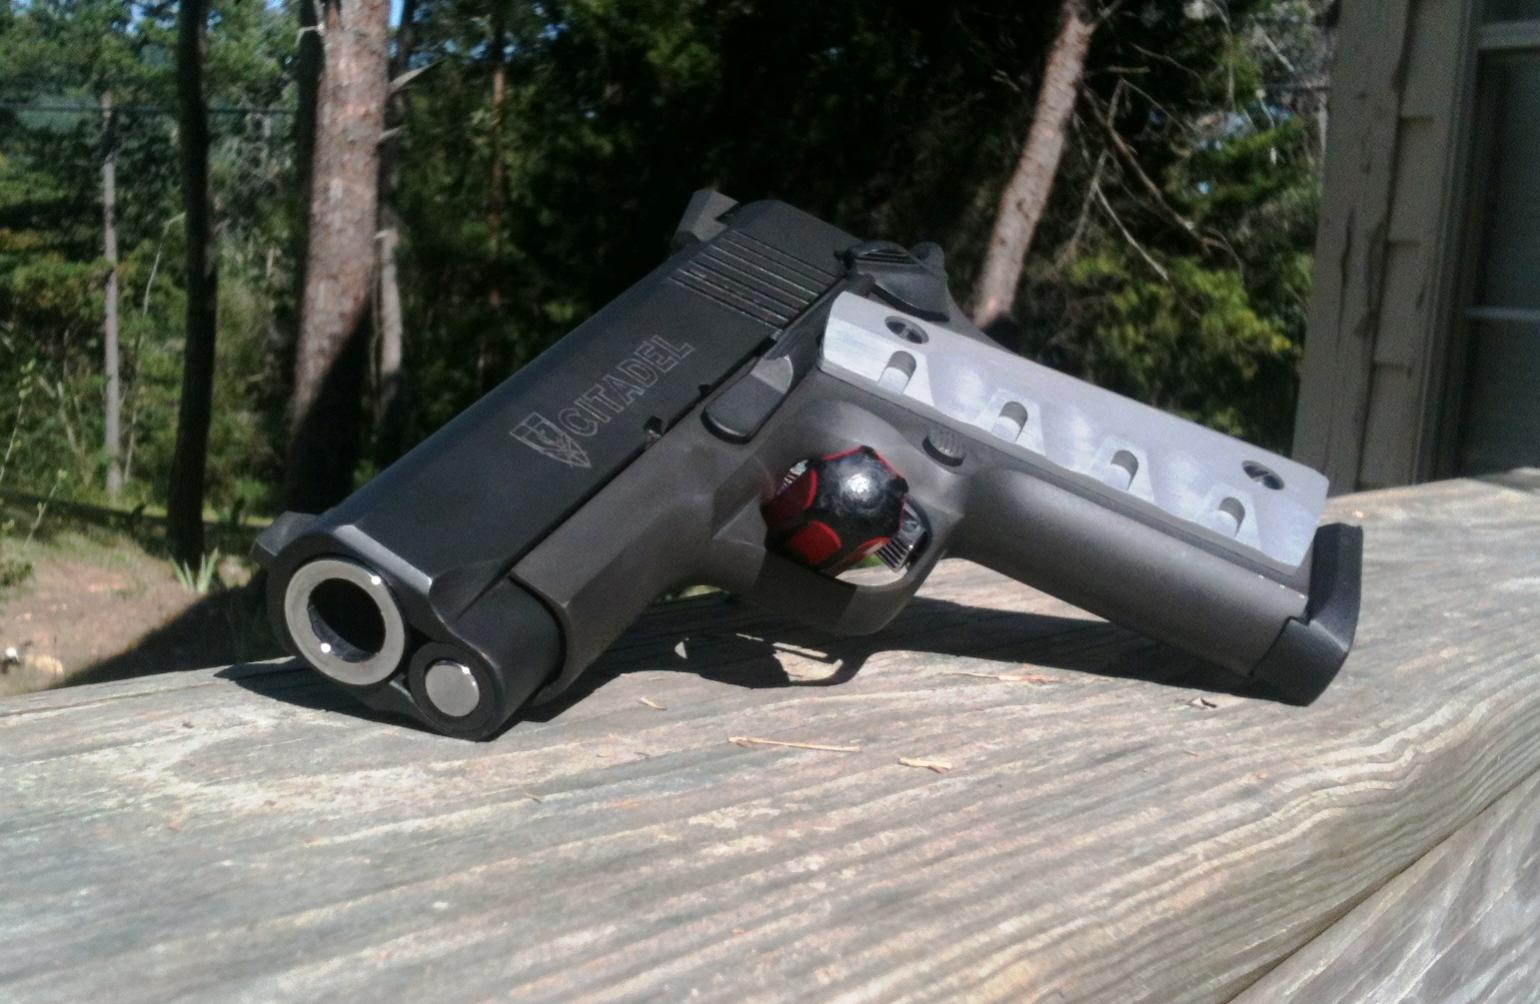 I am officially addicted to the 1911-img_1111.jpg